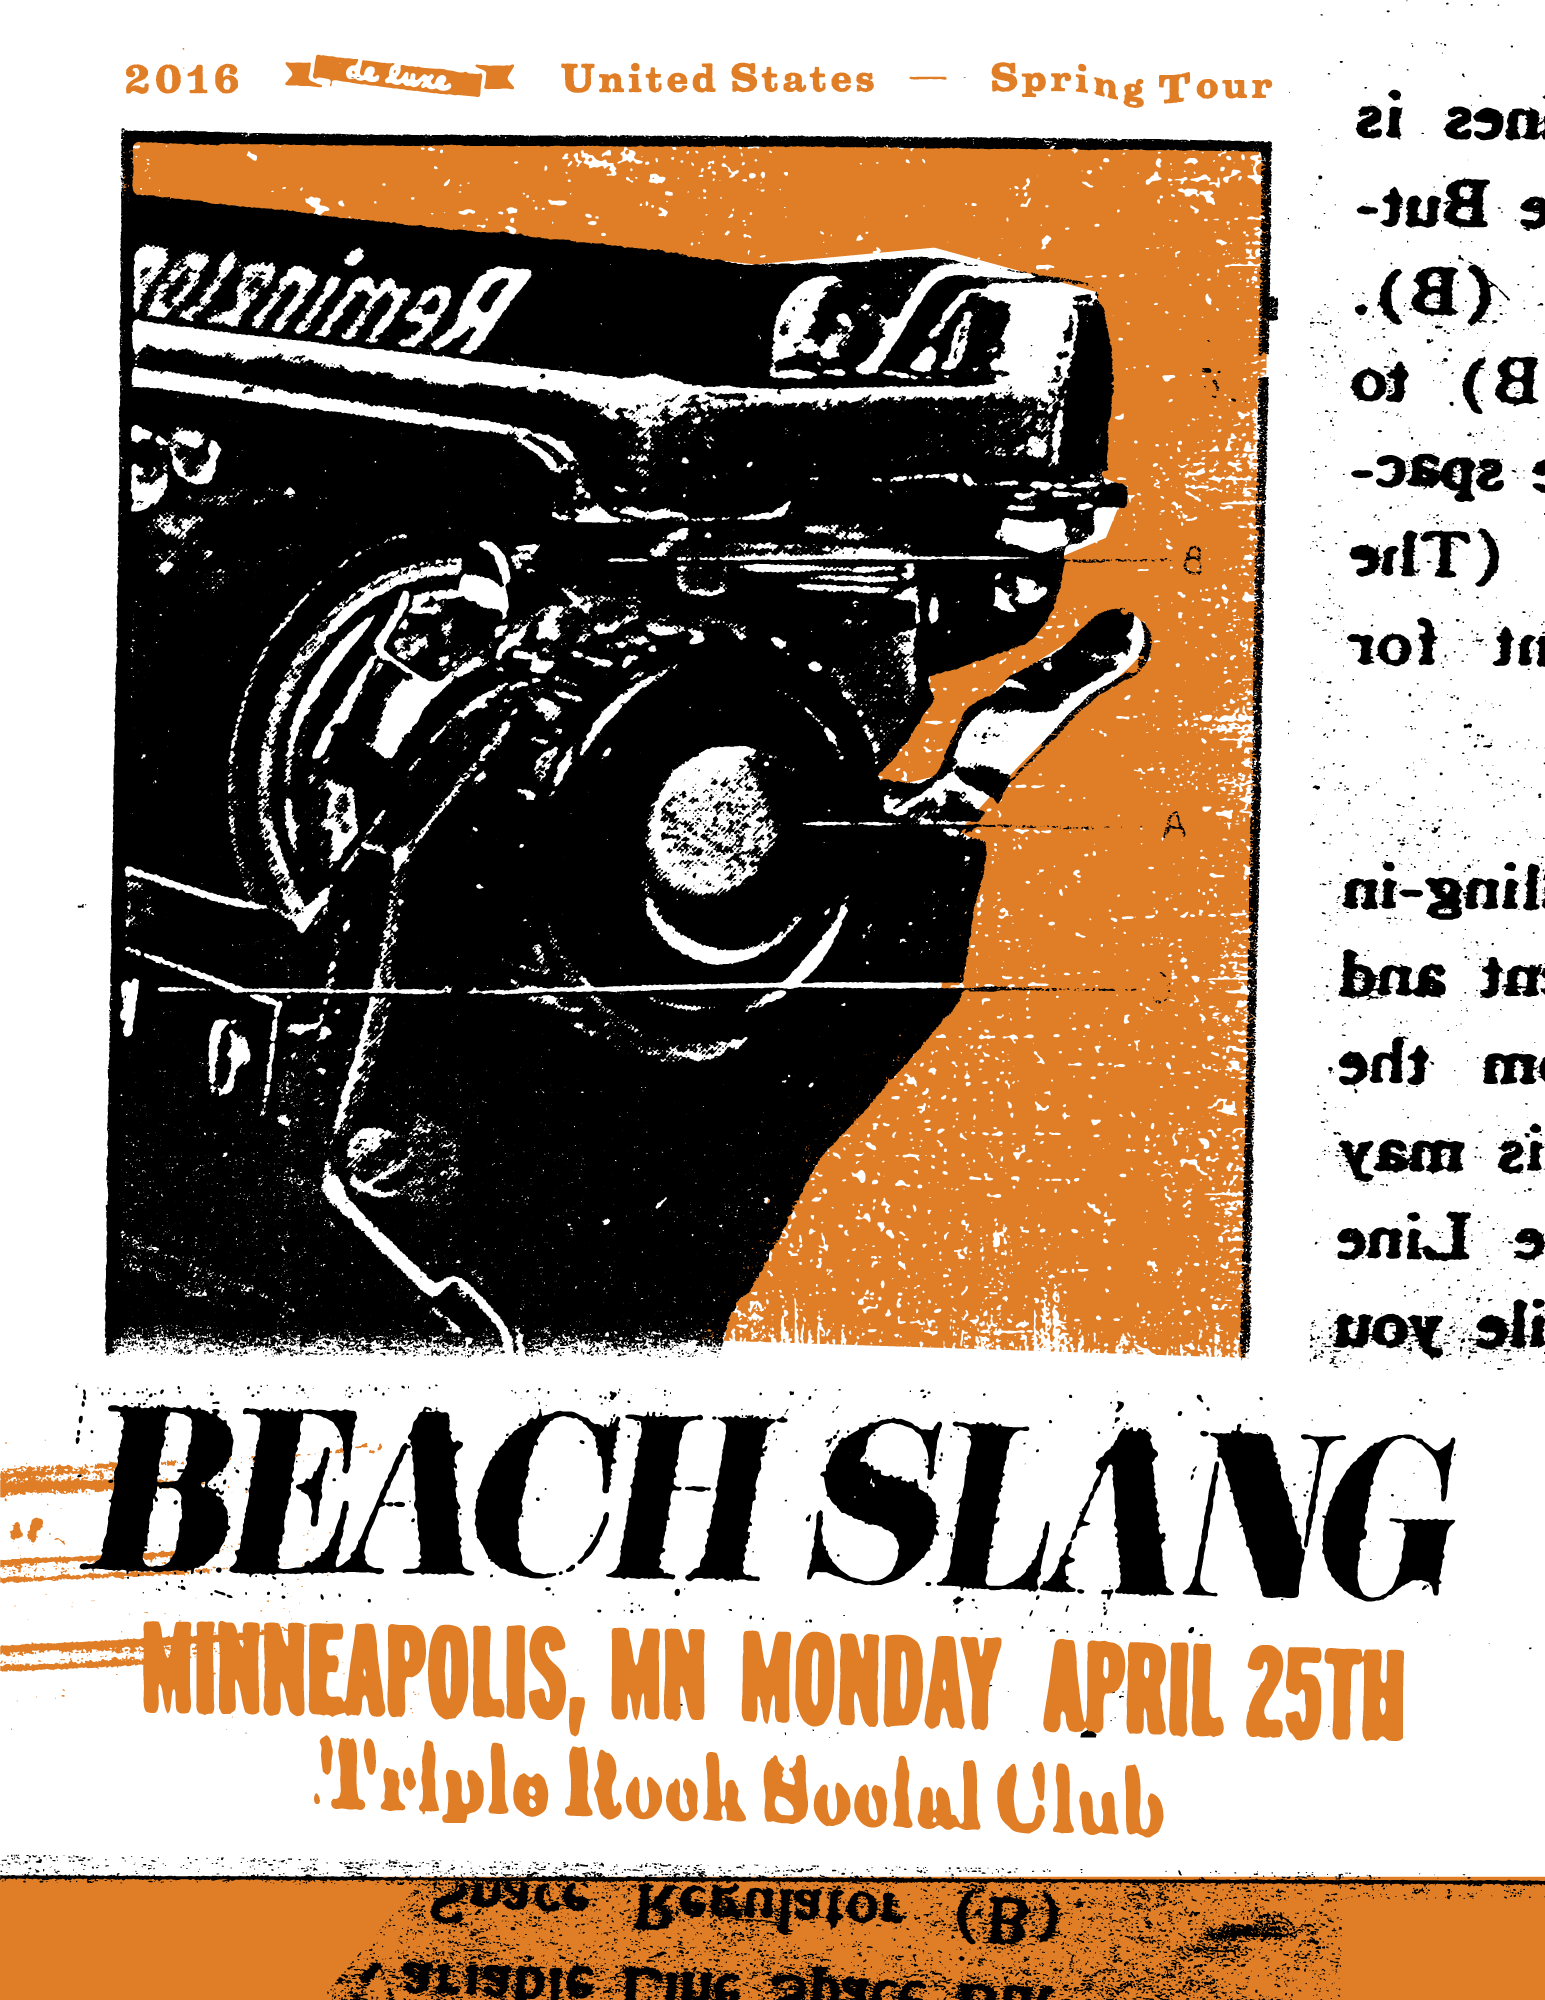 BeachSlang_4-25_Minneapolis_r1.png